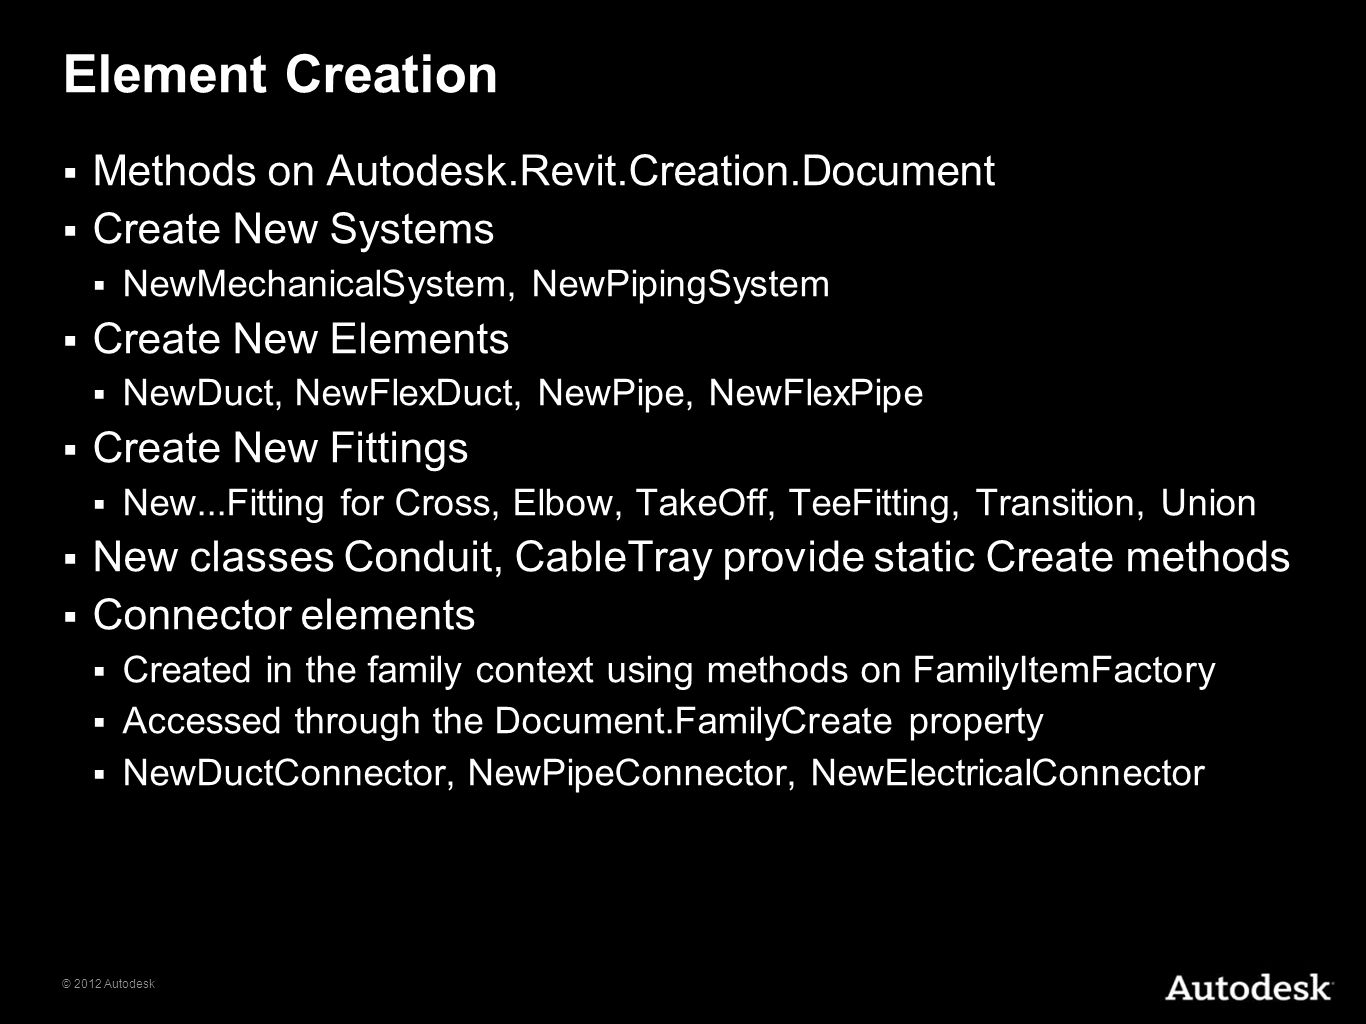 Element Creation Methods on Autodesk.Revit.Creation.Document